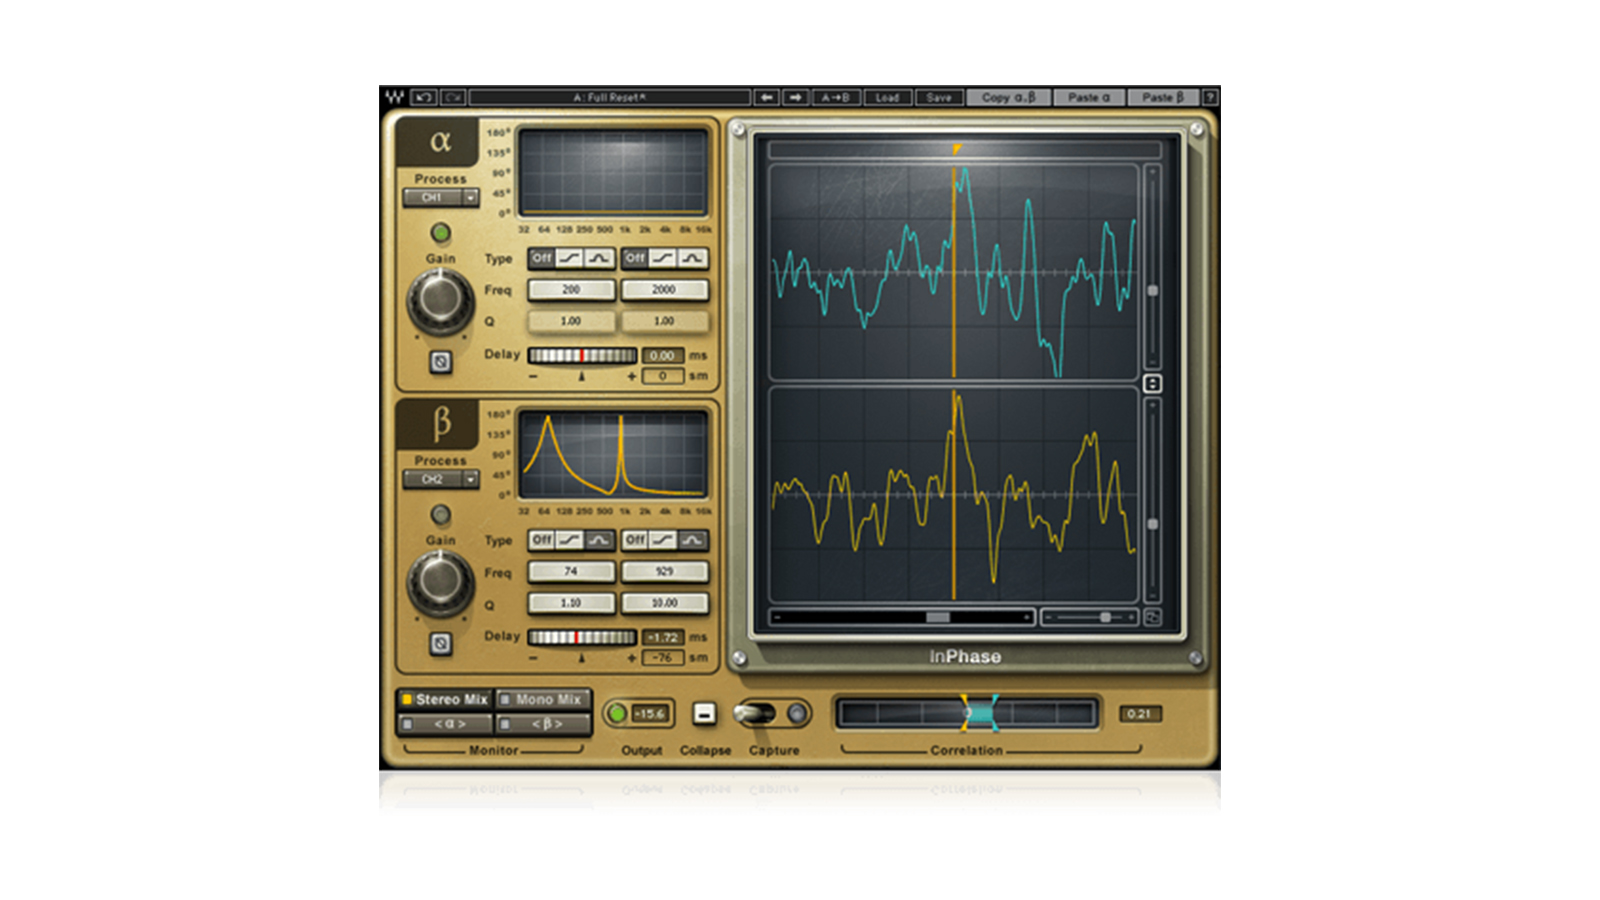 Best Waves plugins 2019: our guide to essential Waves effects, from compressors to ambience plugins | MusicRadar